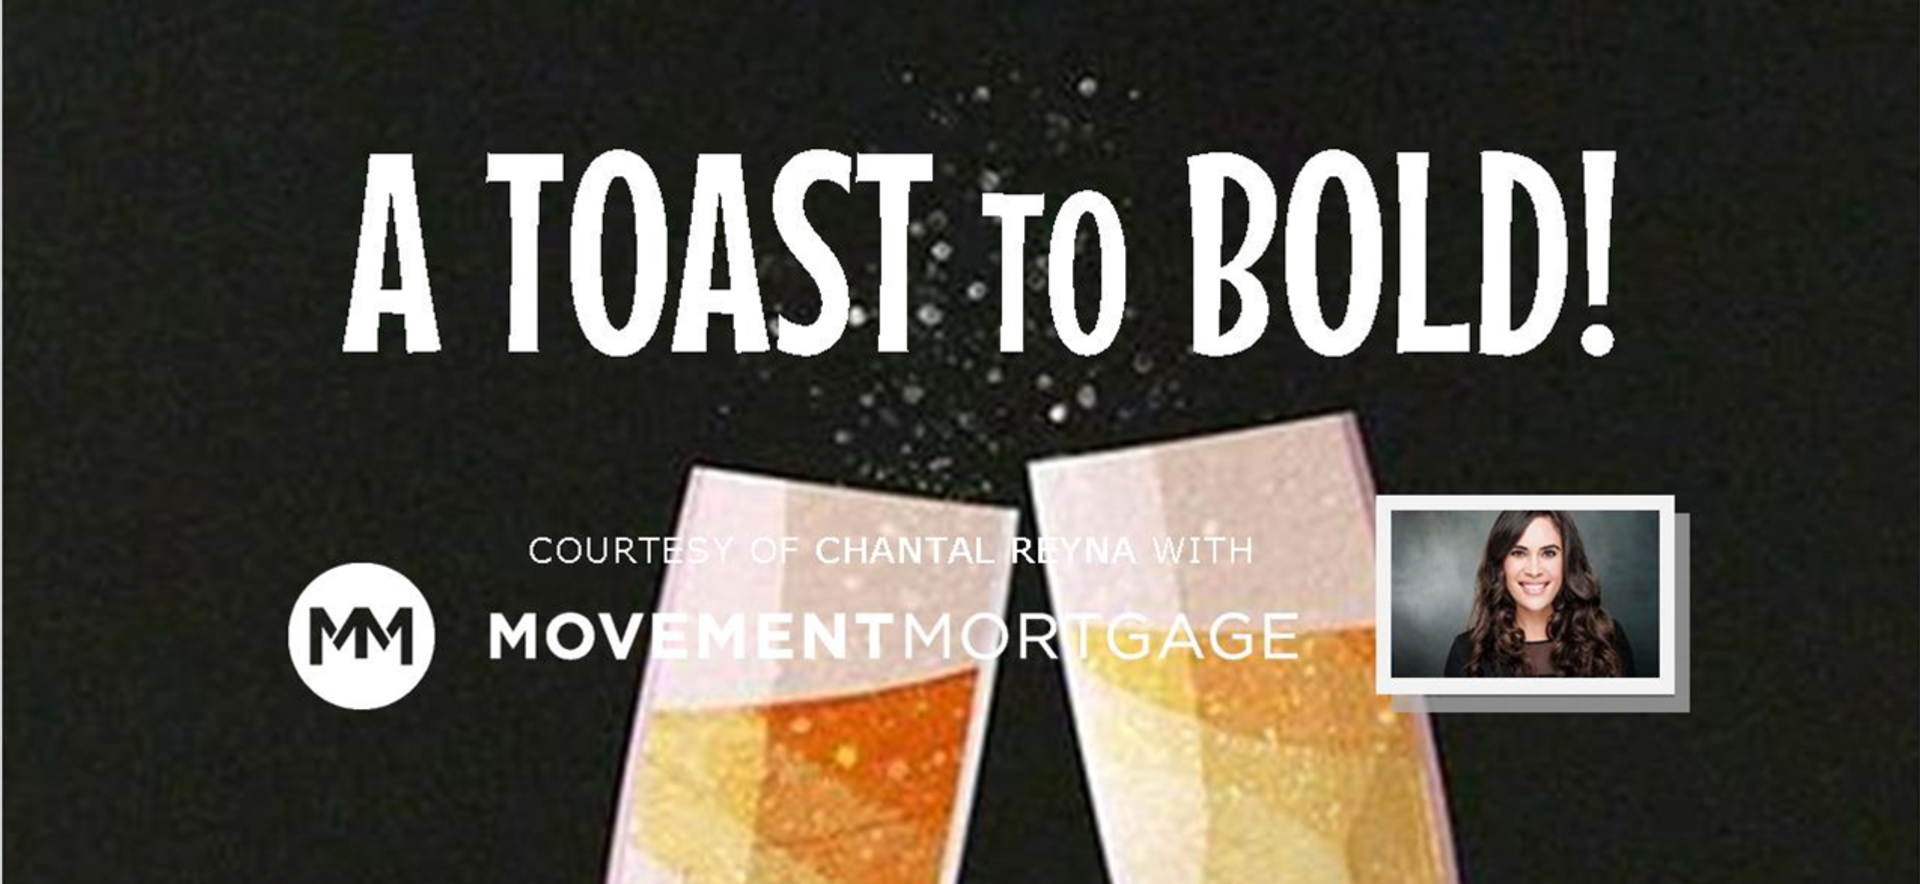 Movement Mortgage Presents: A Toast to BOLD Recap!